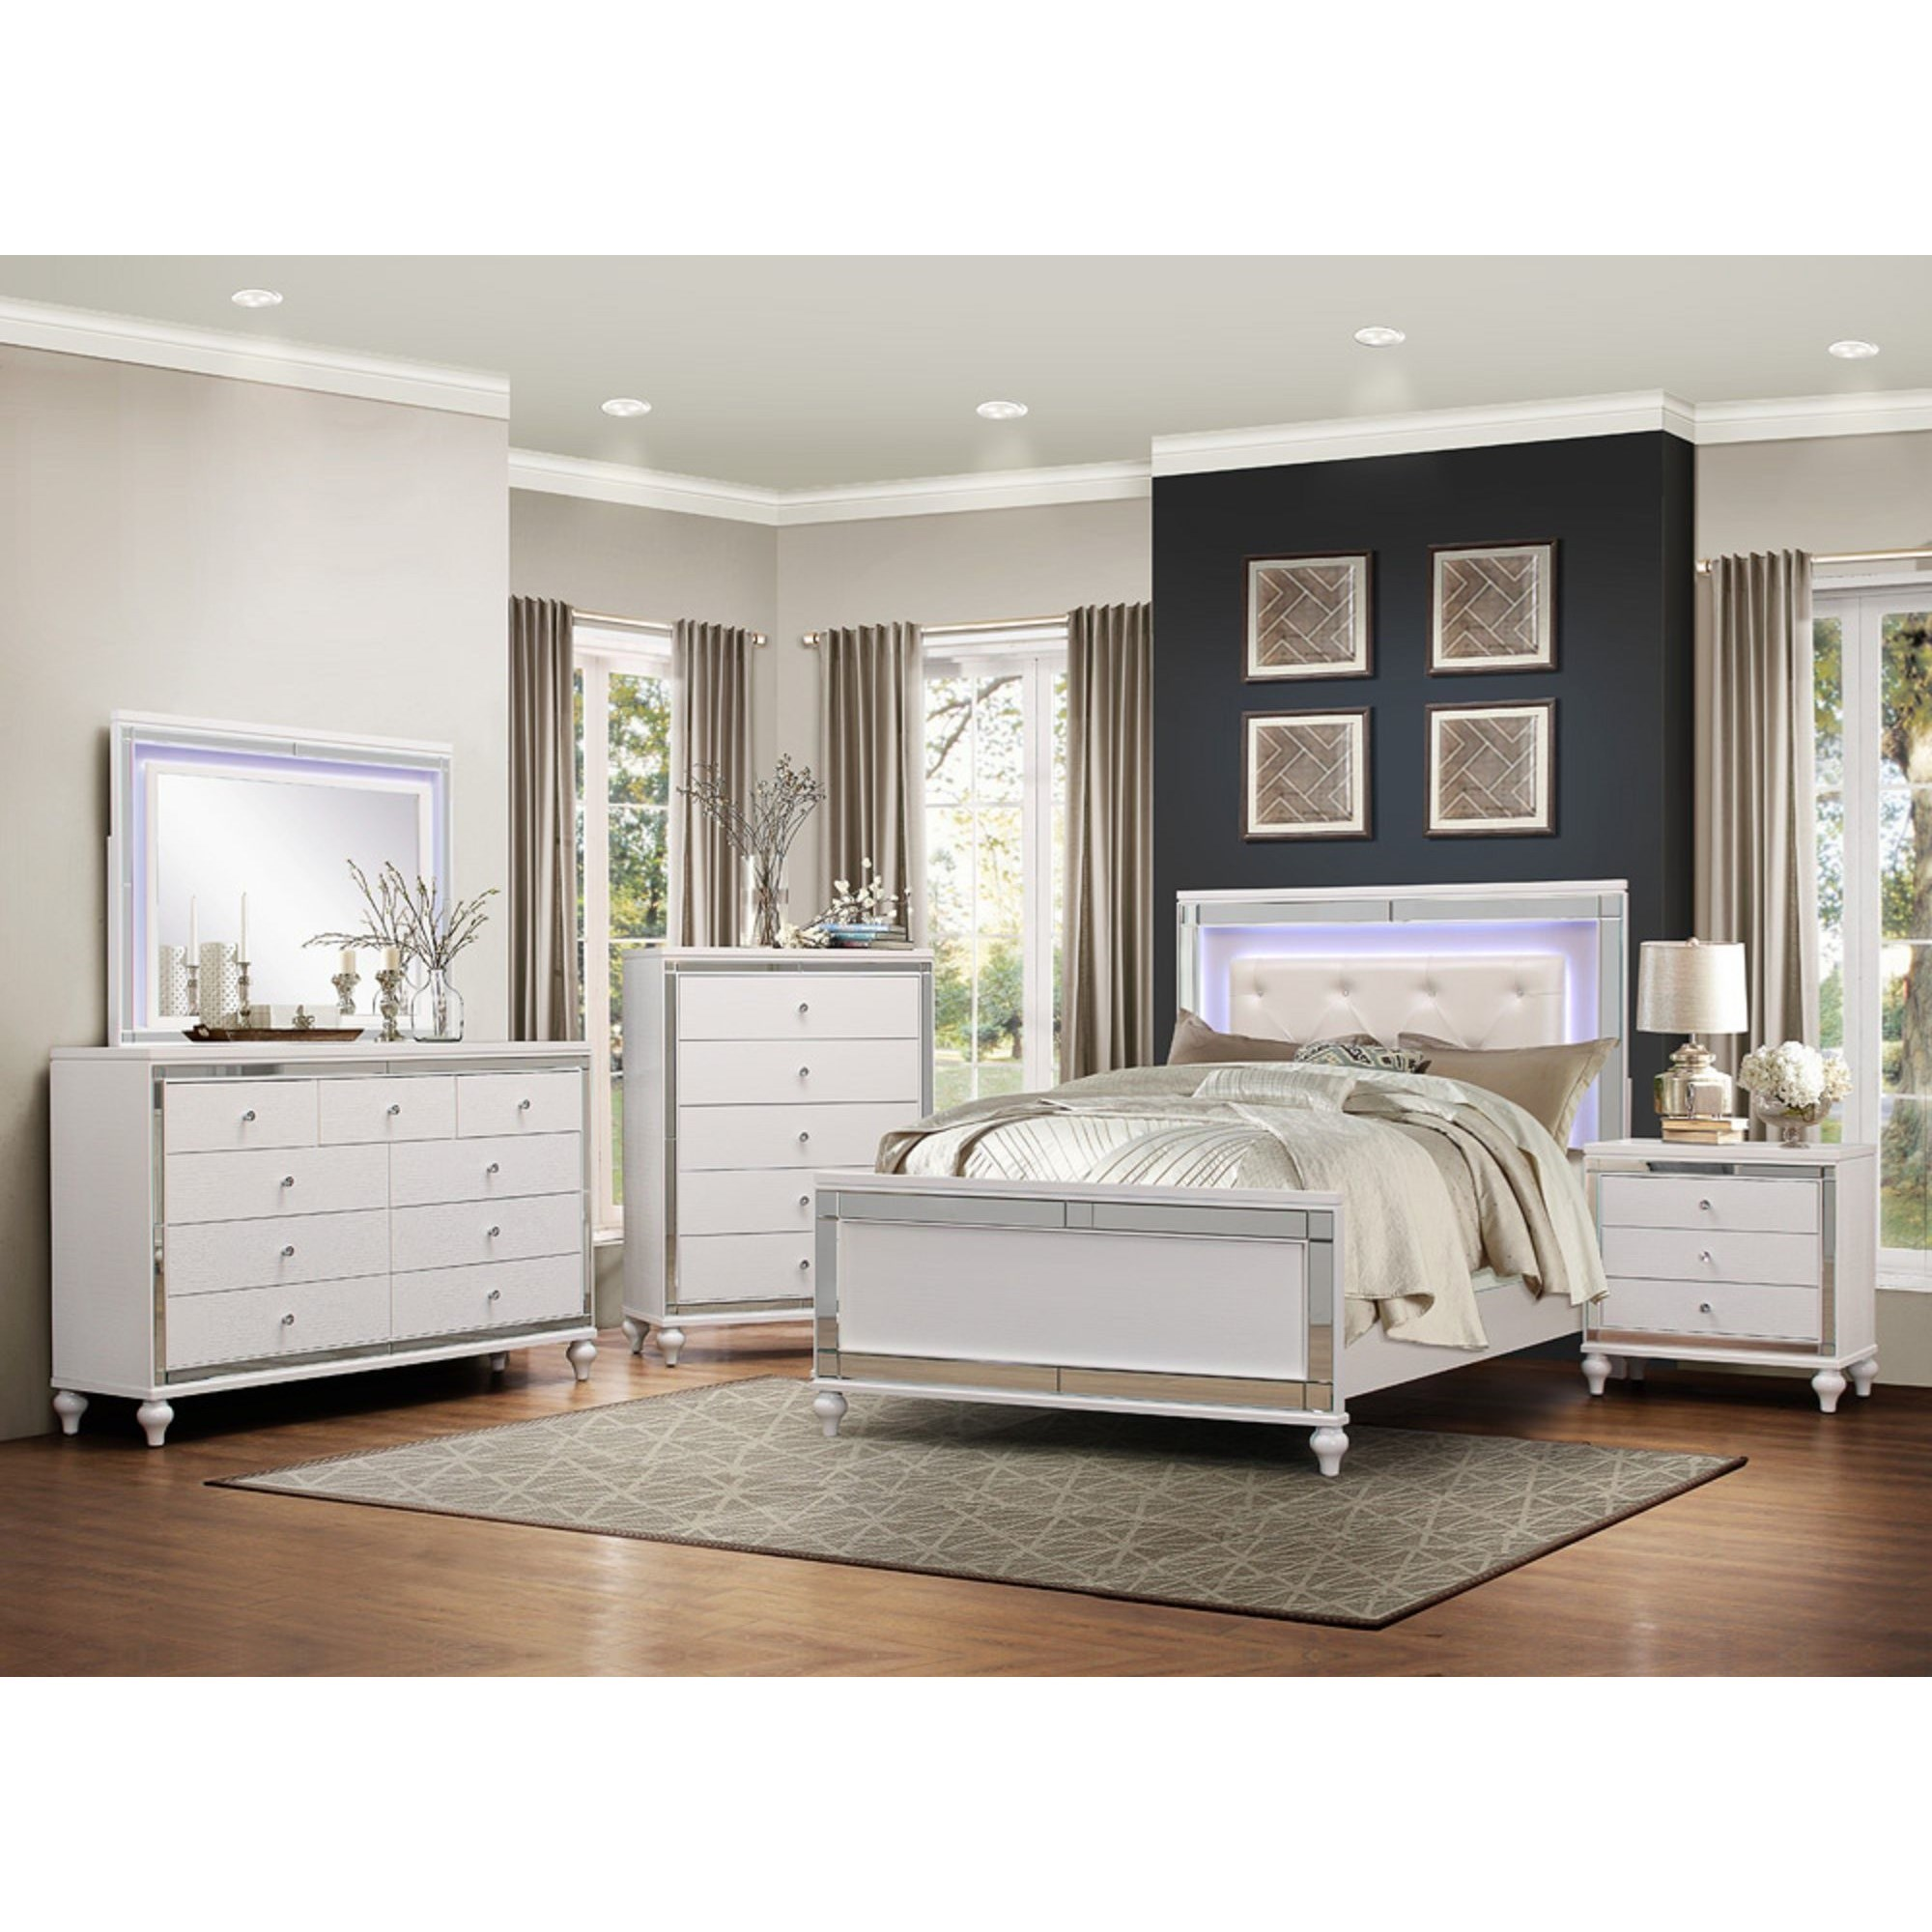 Alonza King Lit Bedroom Group by Homelegance at Simply Home by Lindy's